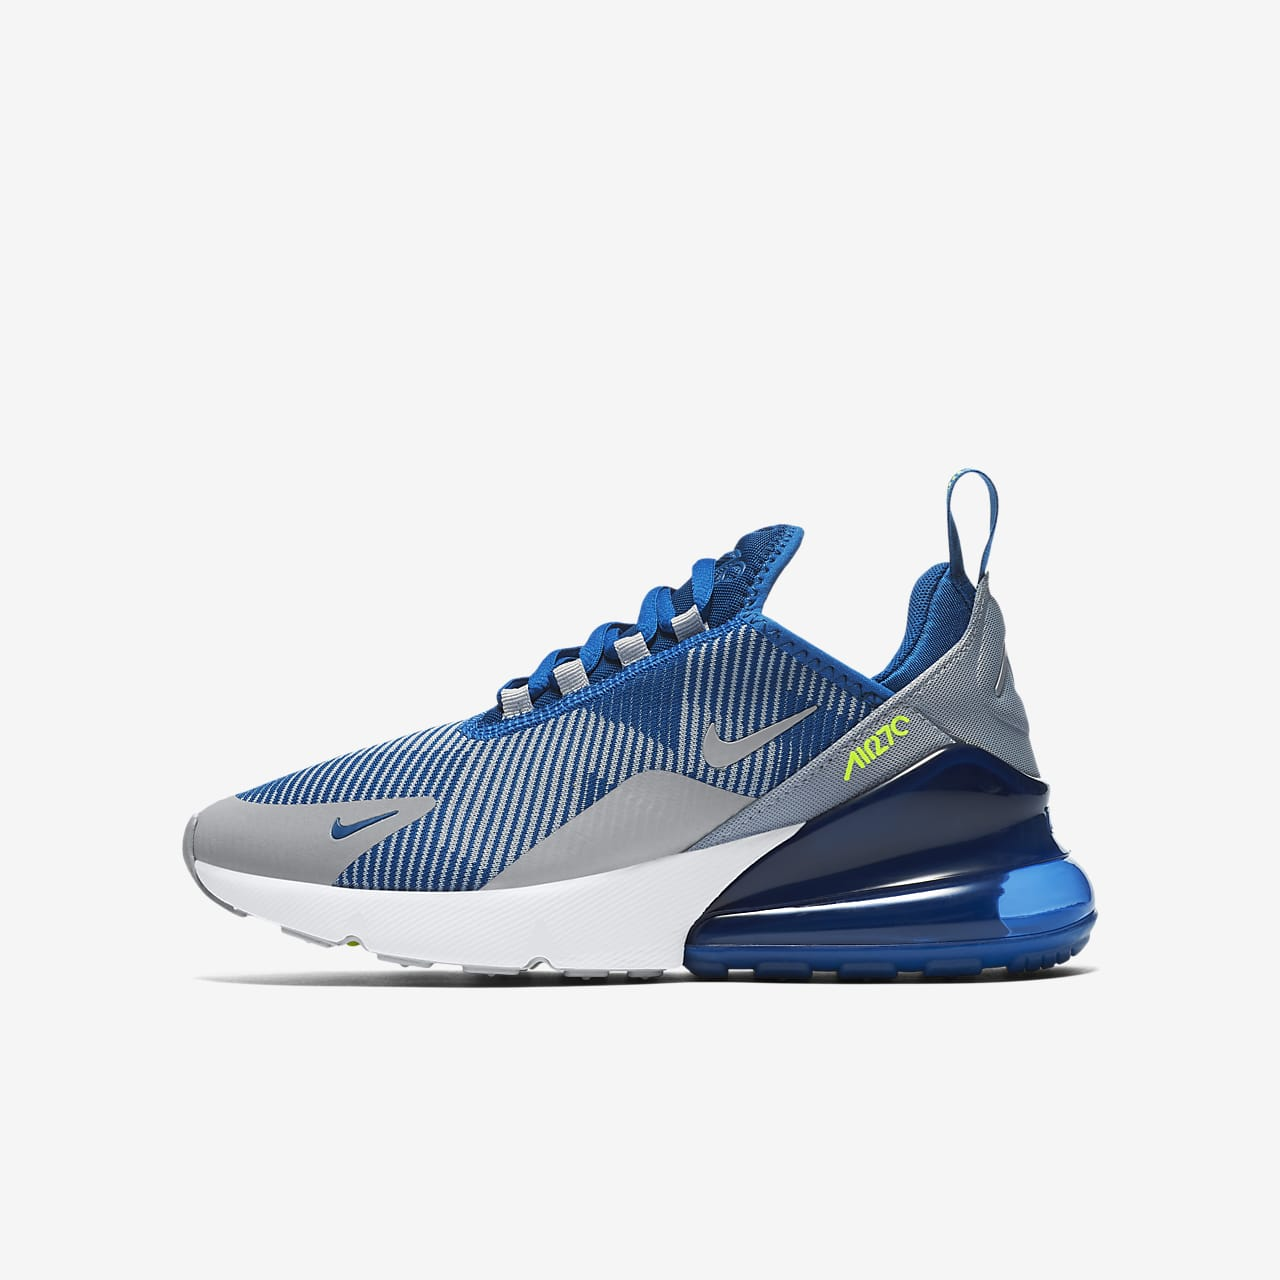 Nike Air Max 270 KJCRD (GS) 大童运动童鞋